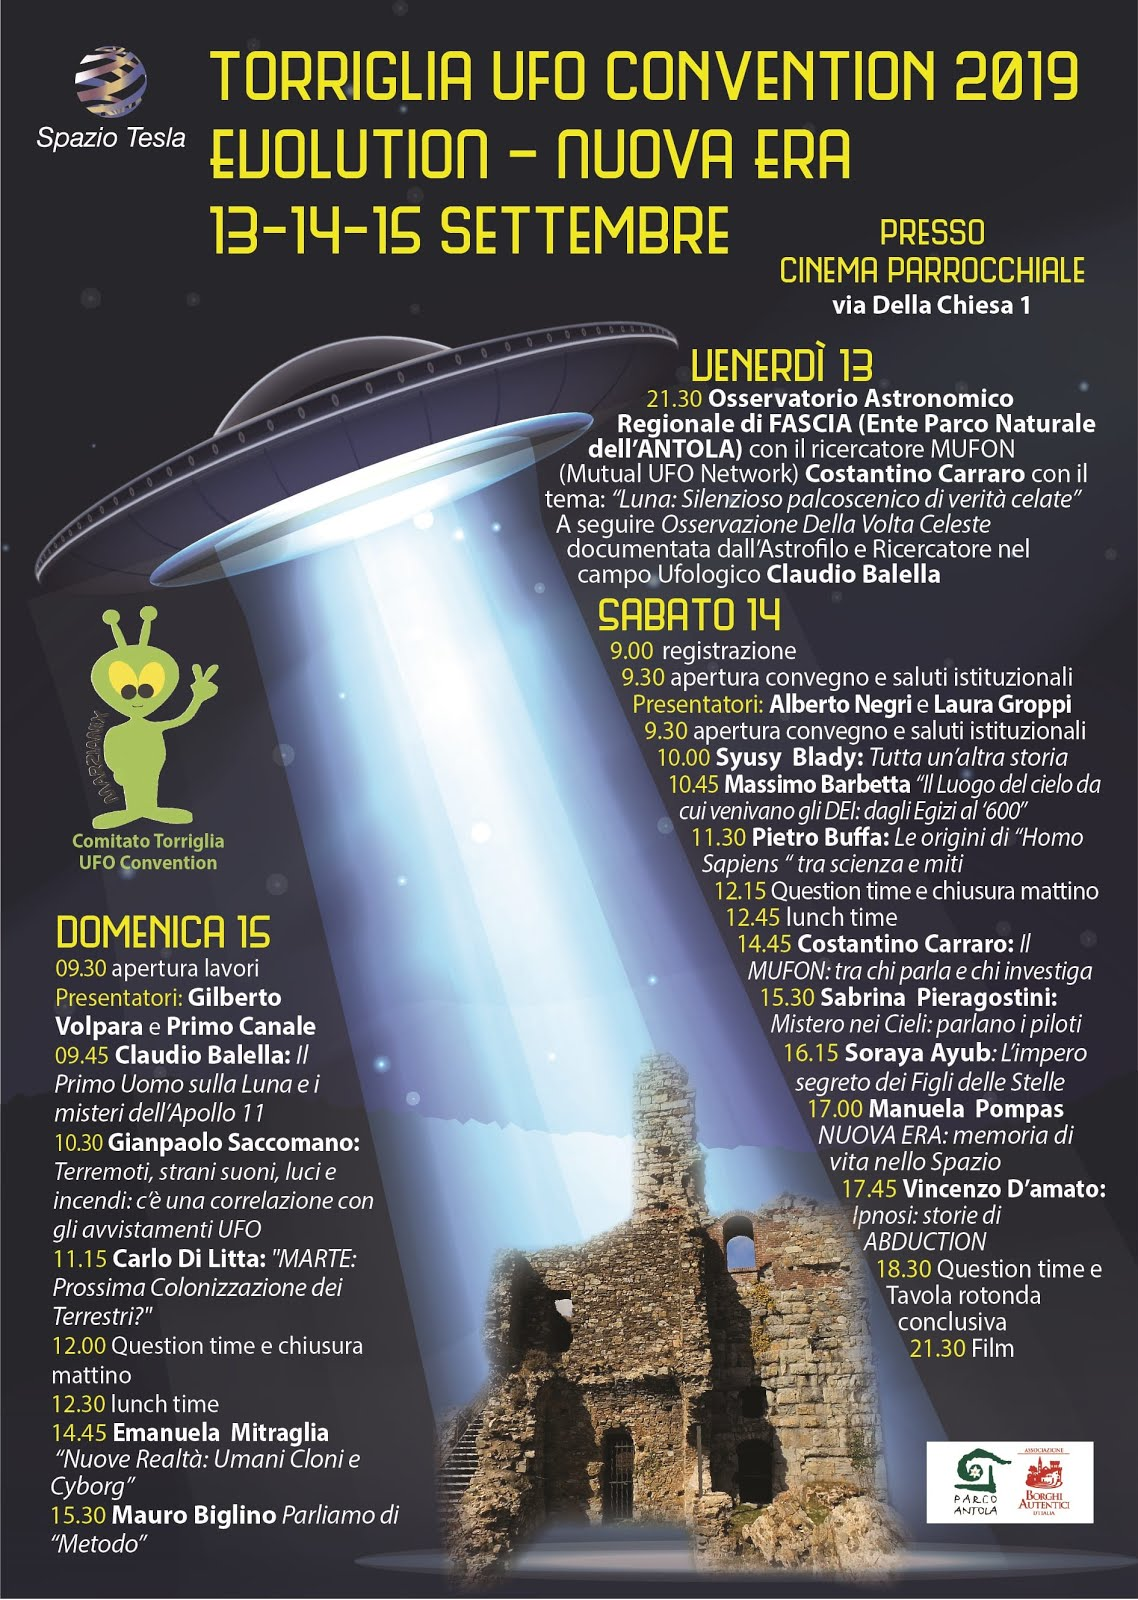 TORRIGLIA UFO CONVENTION 2019